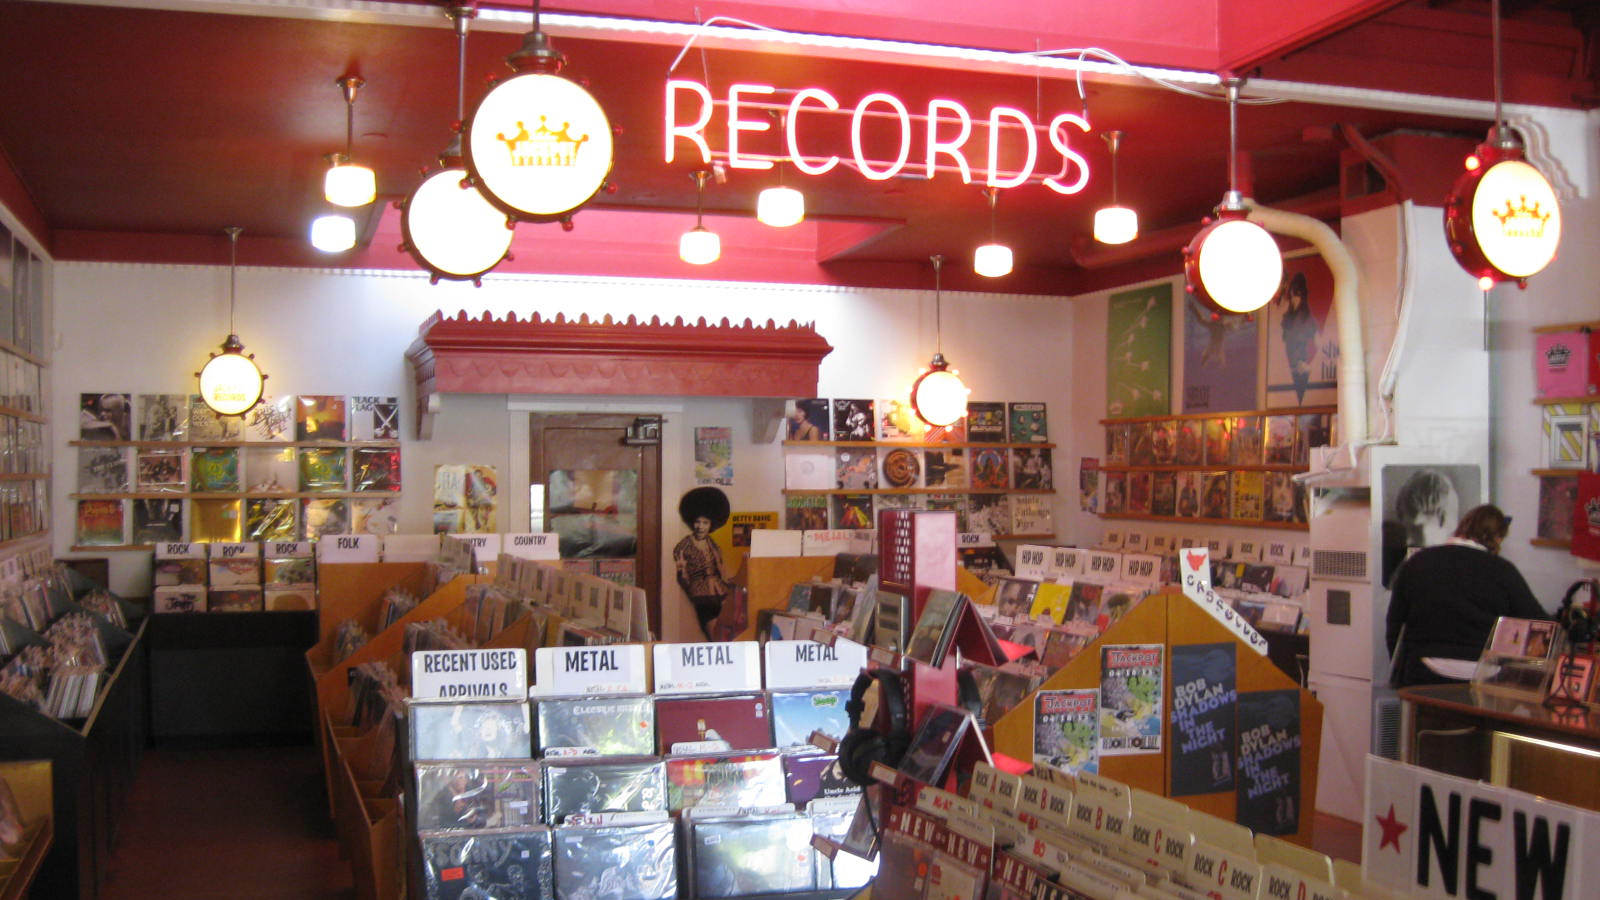 150409170803-09-iconic-record-stores-0410.jpg